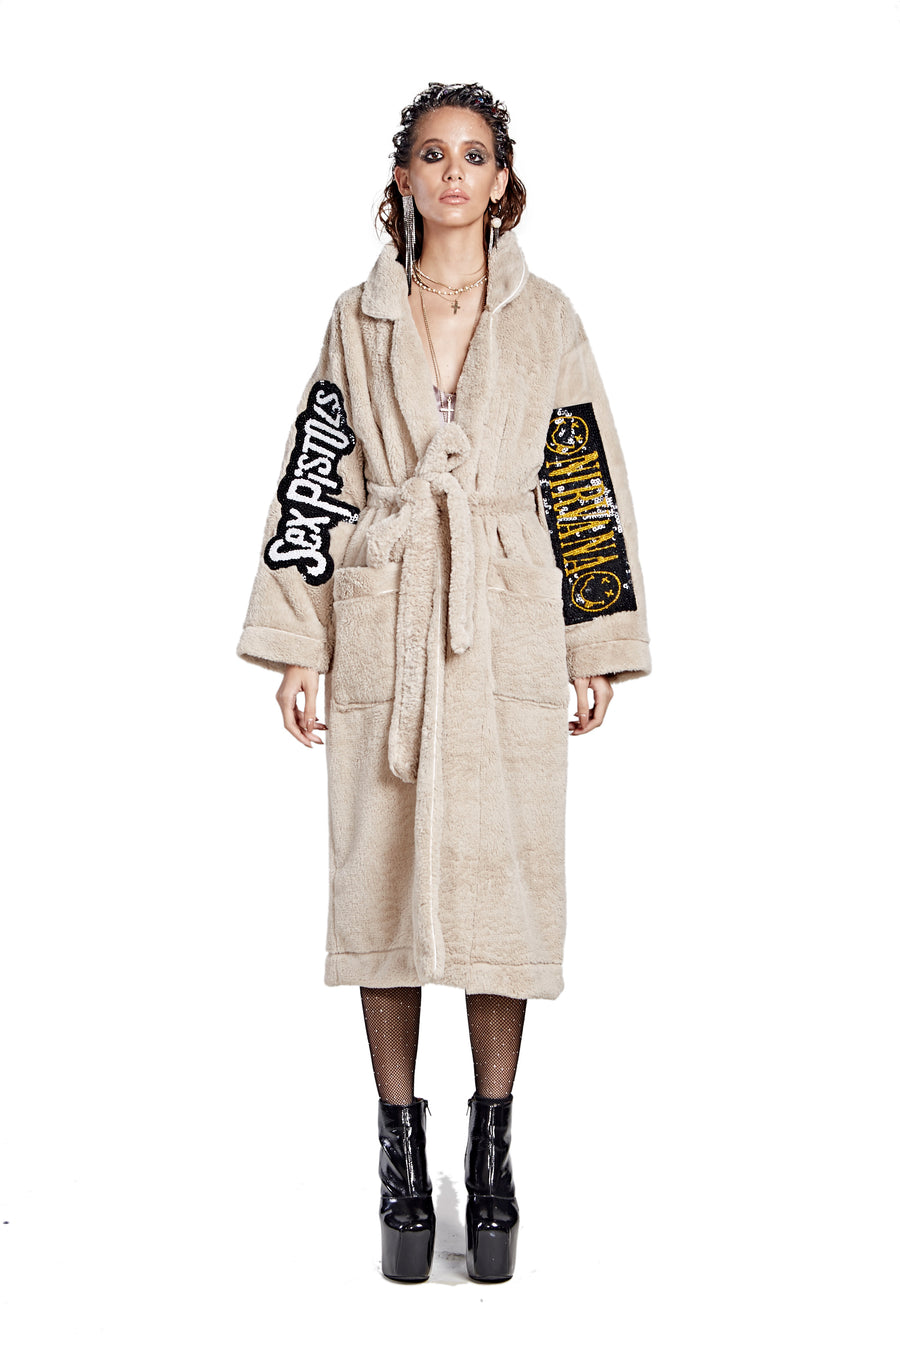 Patched Fur Bath Robe - Tan - I LOVE DIY by Panida